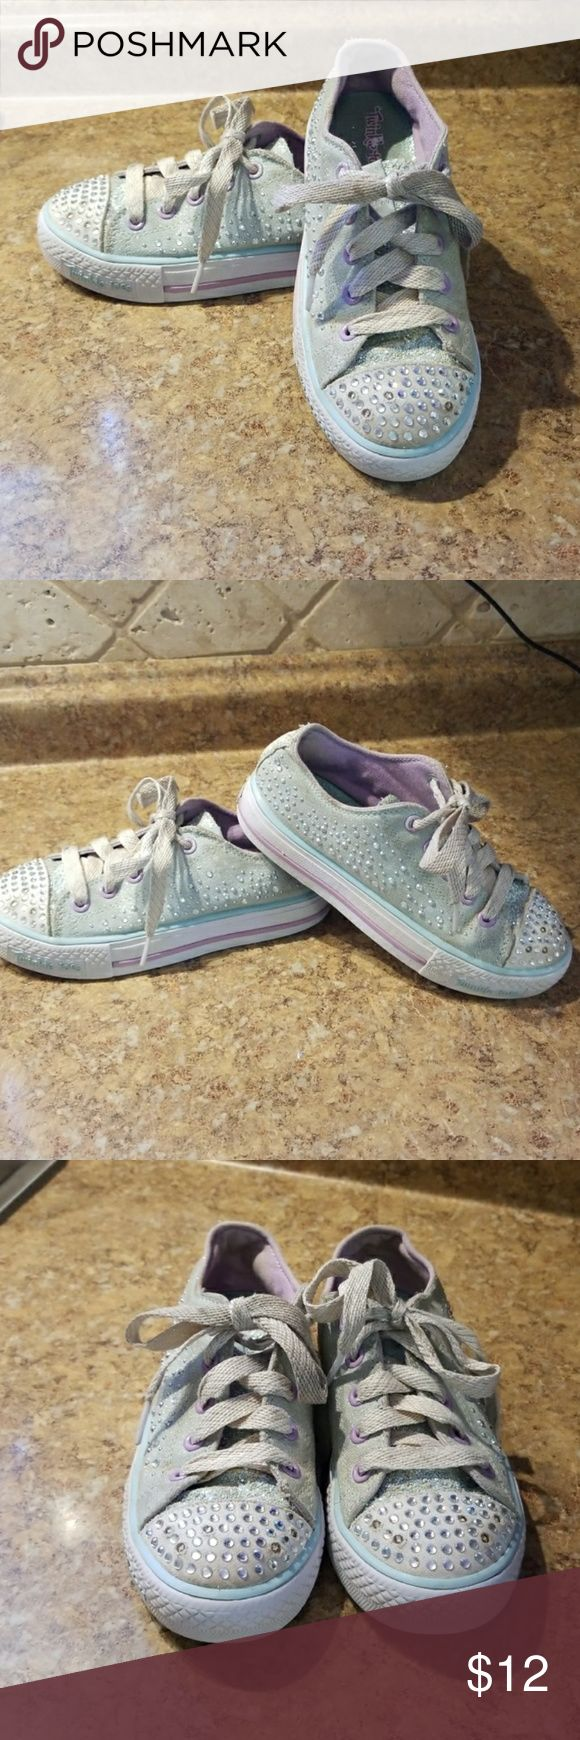 Skechers Twinkle Toes Sneakers Girls Twinkle Toes Sneakers size 13.5. All the Twinkls still work. I have not tried to wash theses. Color is a pale blue and lilac. BUNDLE for more savings Skechers Shoes Sneakers